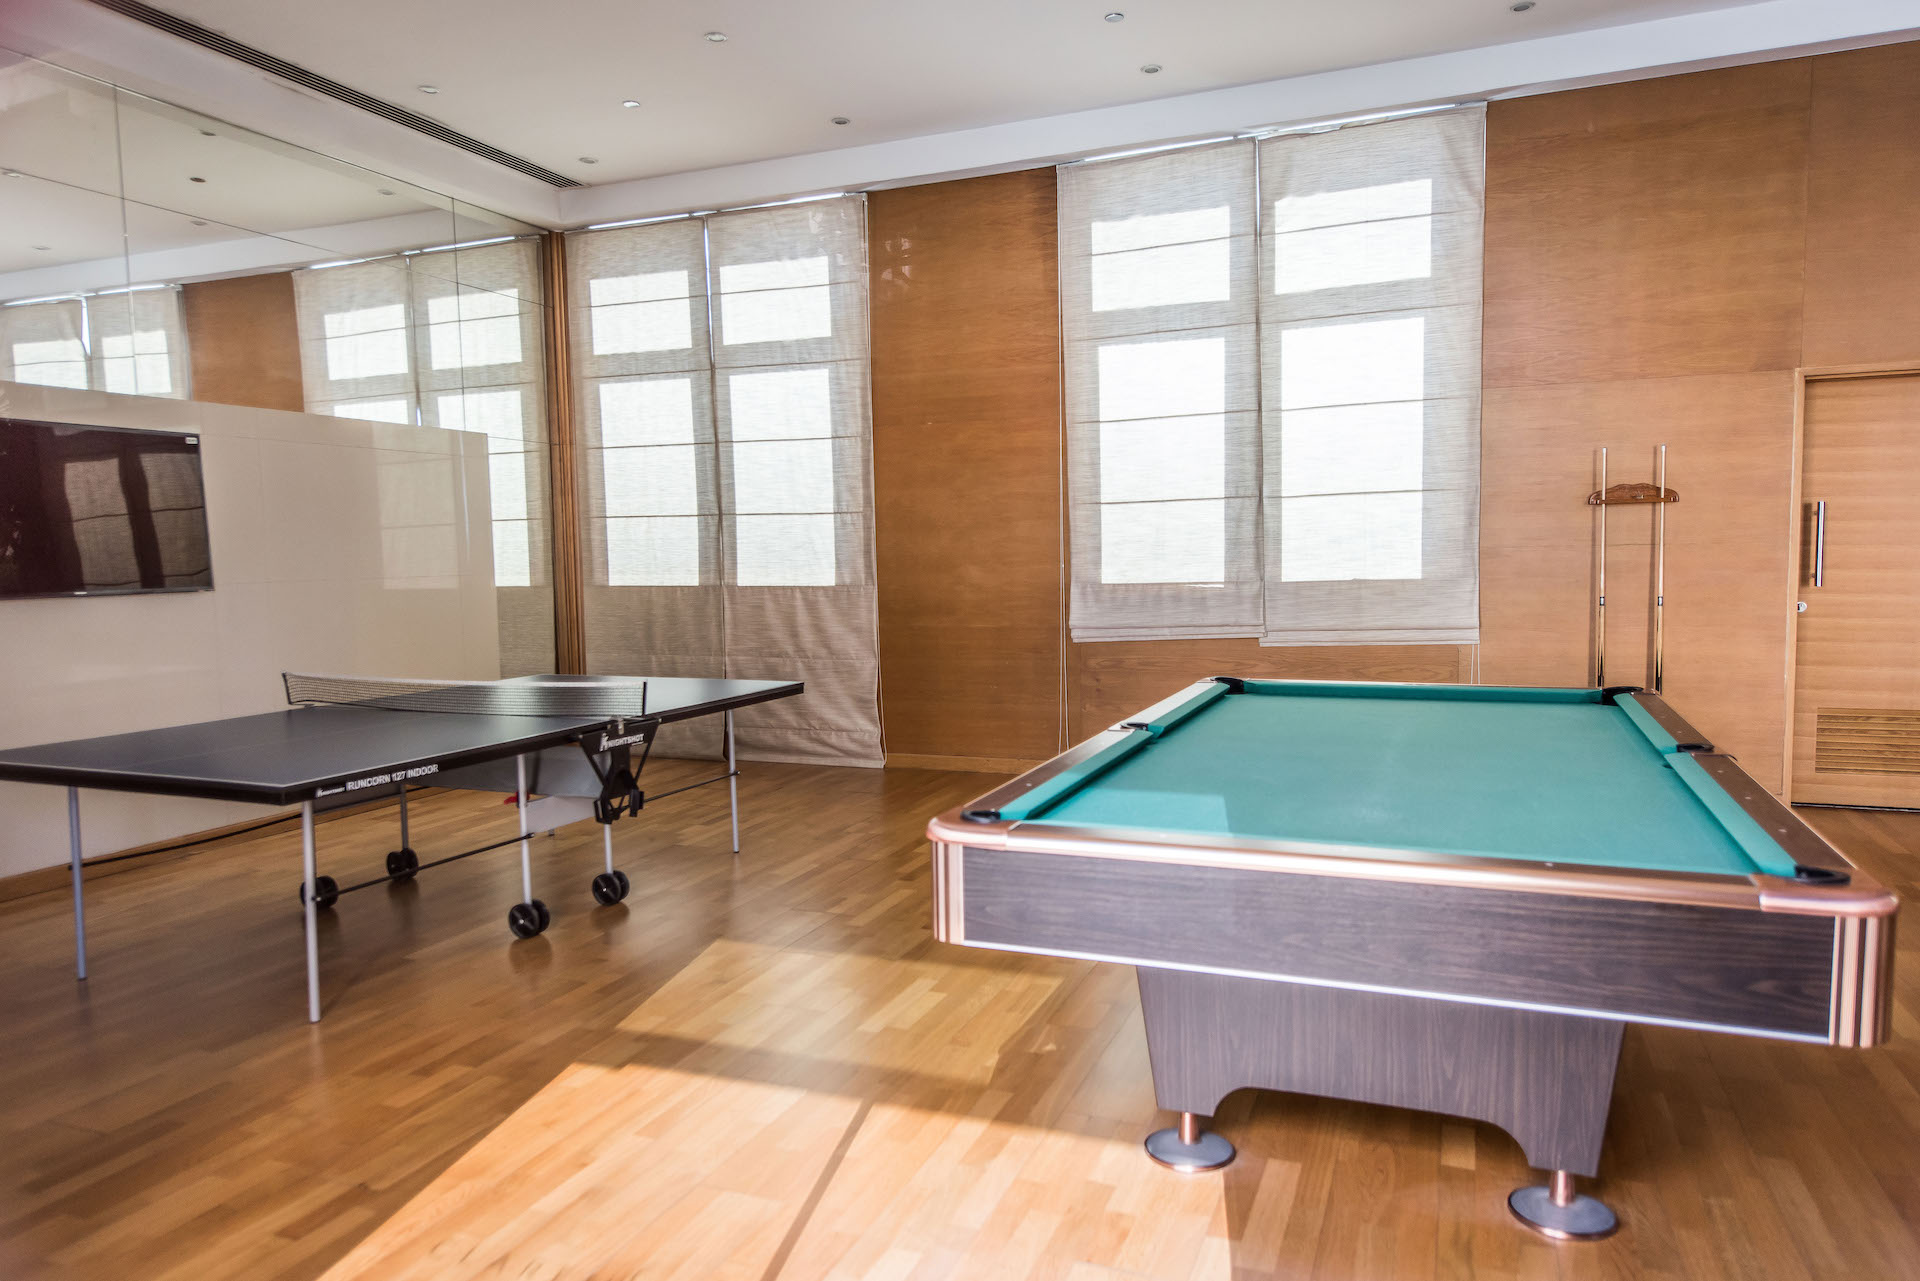 Pool table at Claren Tower Apartment